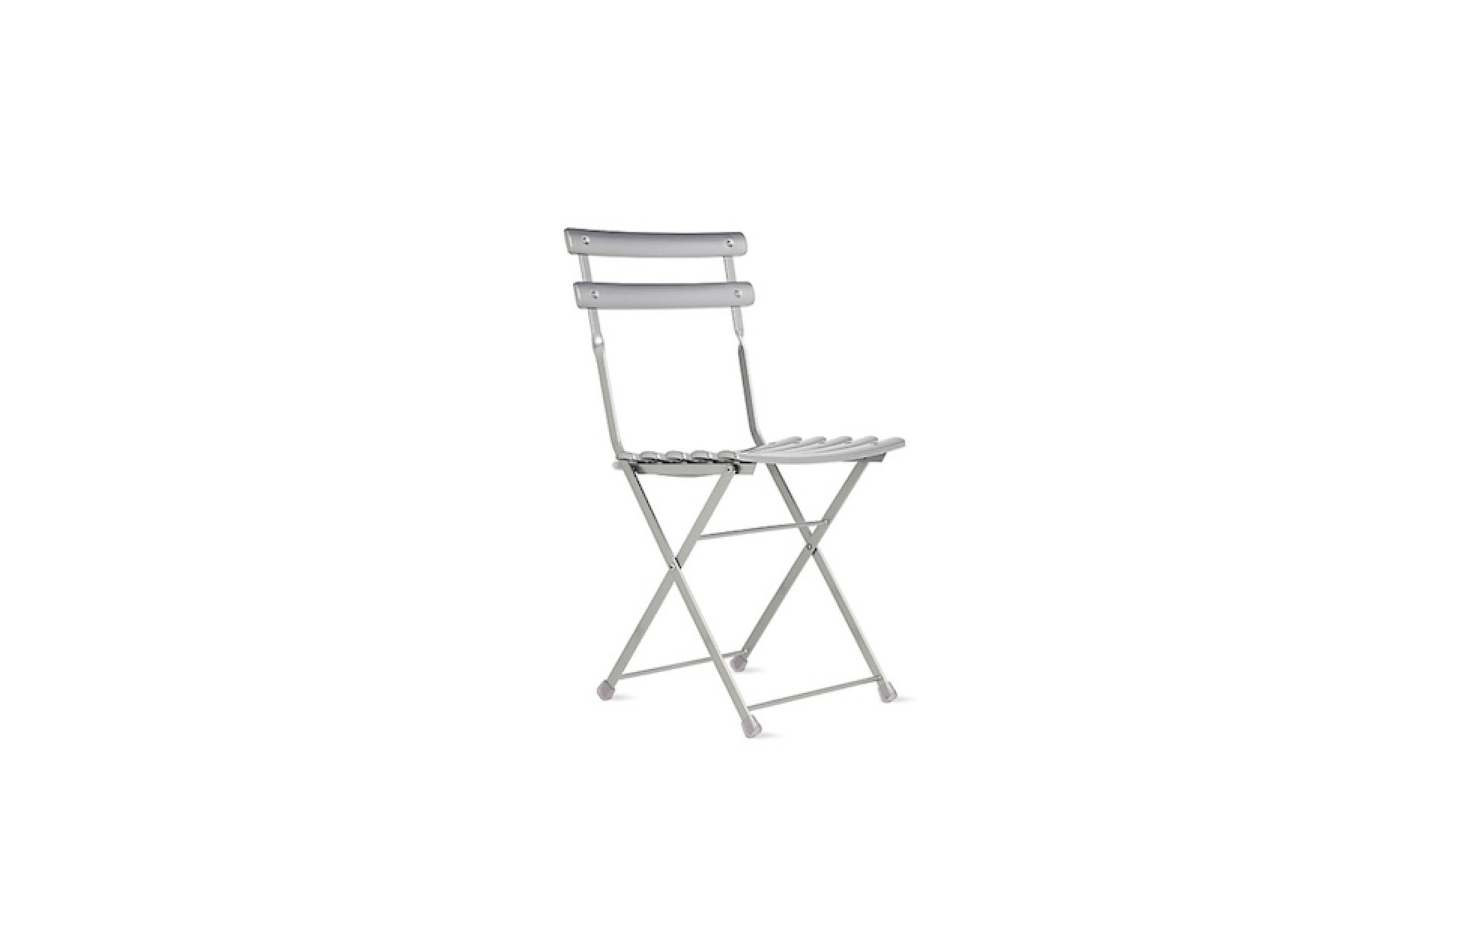 With A Durable Steel Frame And Weather Resistant Powder Coated Finish, The  Silver